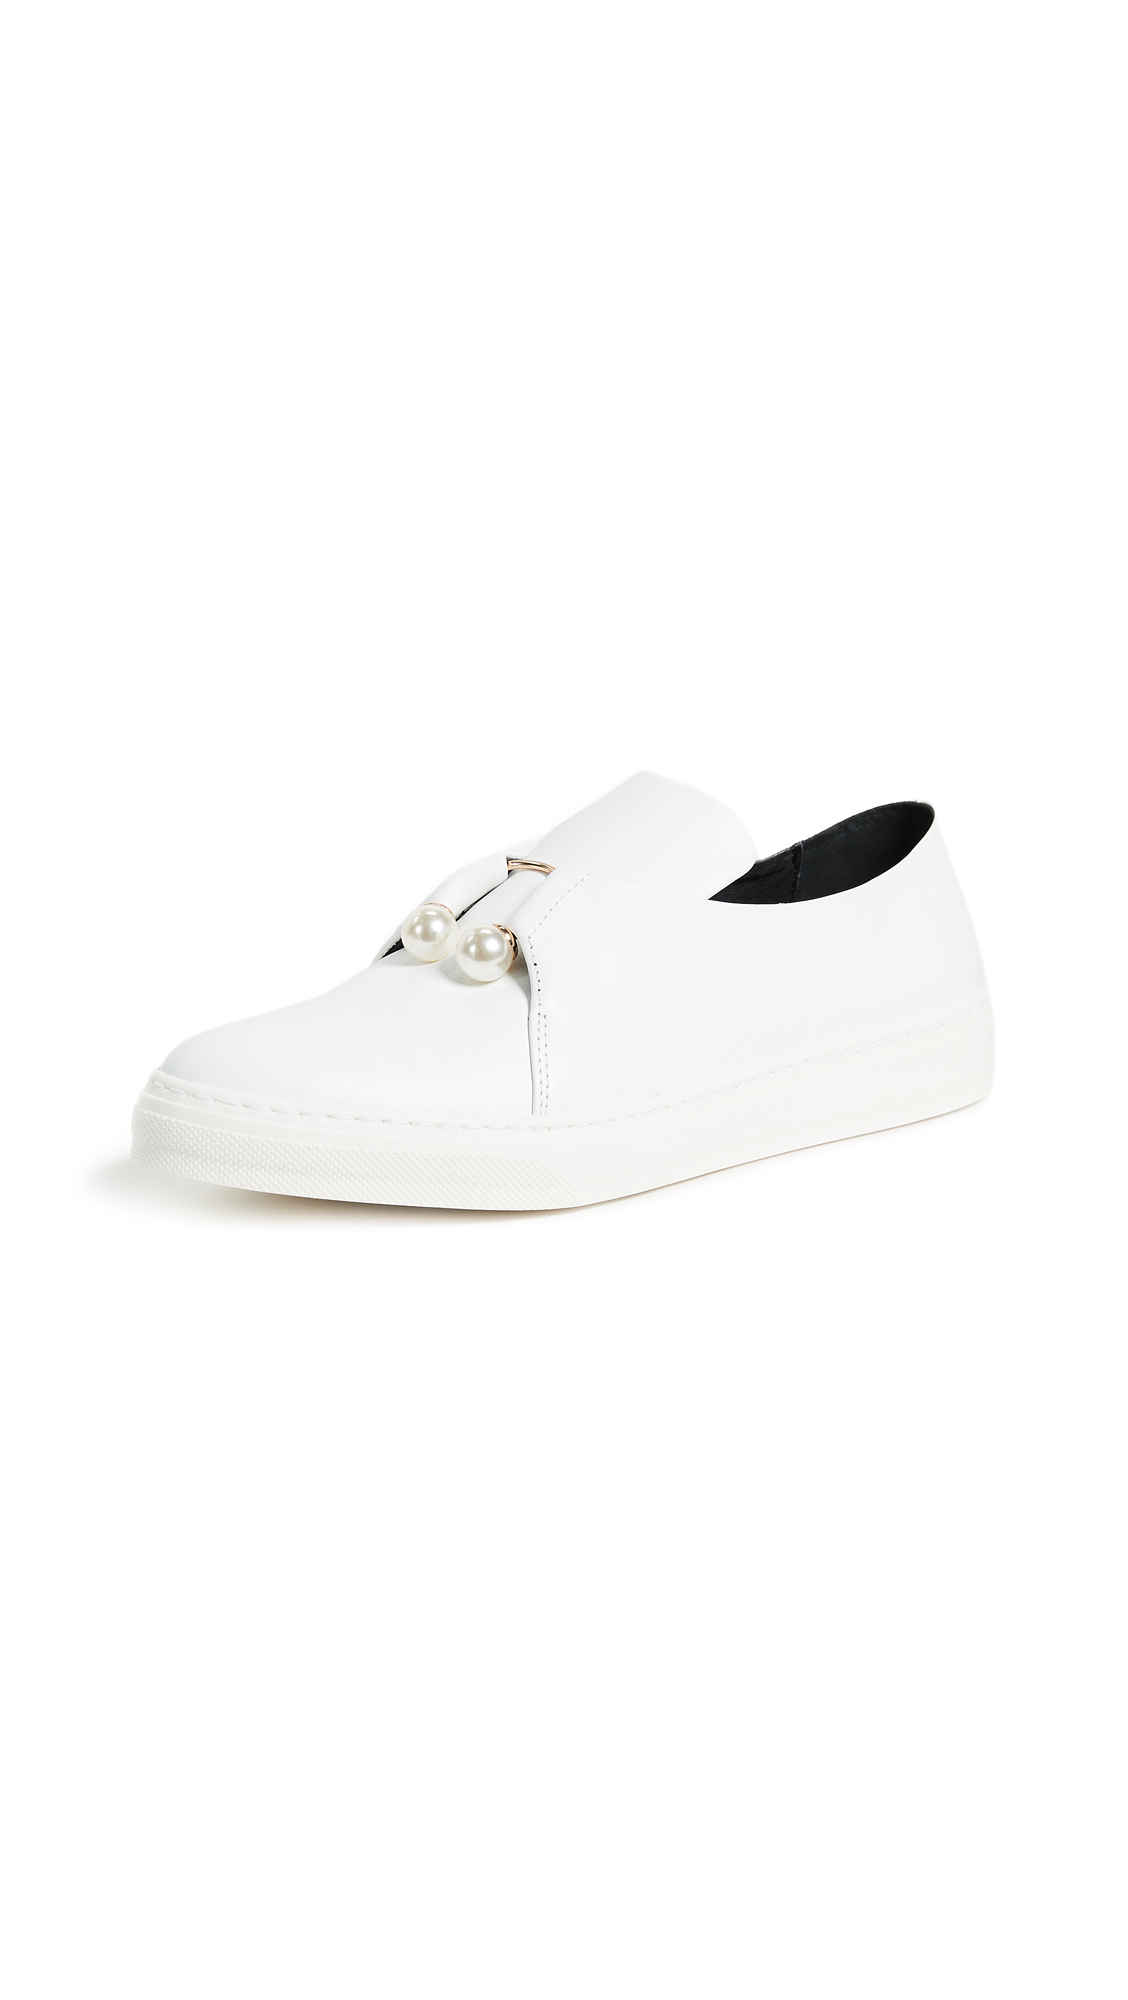 Mother of Pearl Fletcher Slip On Shoes - White